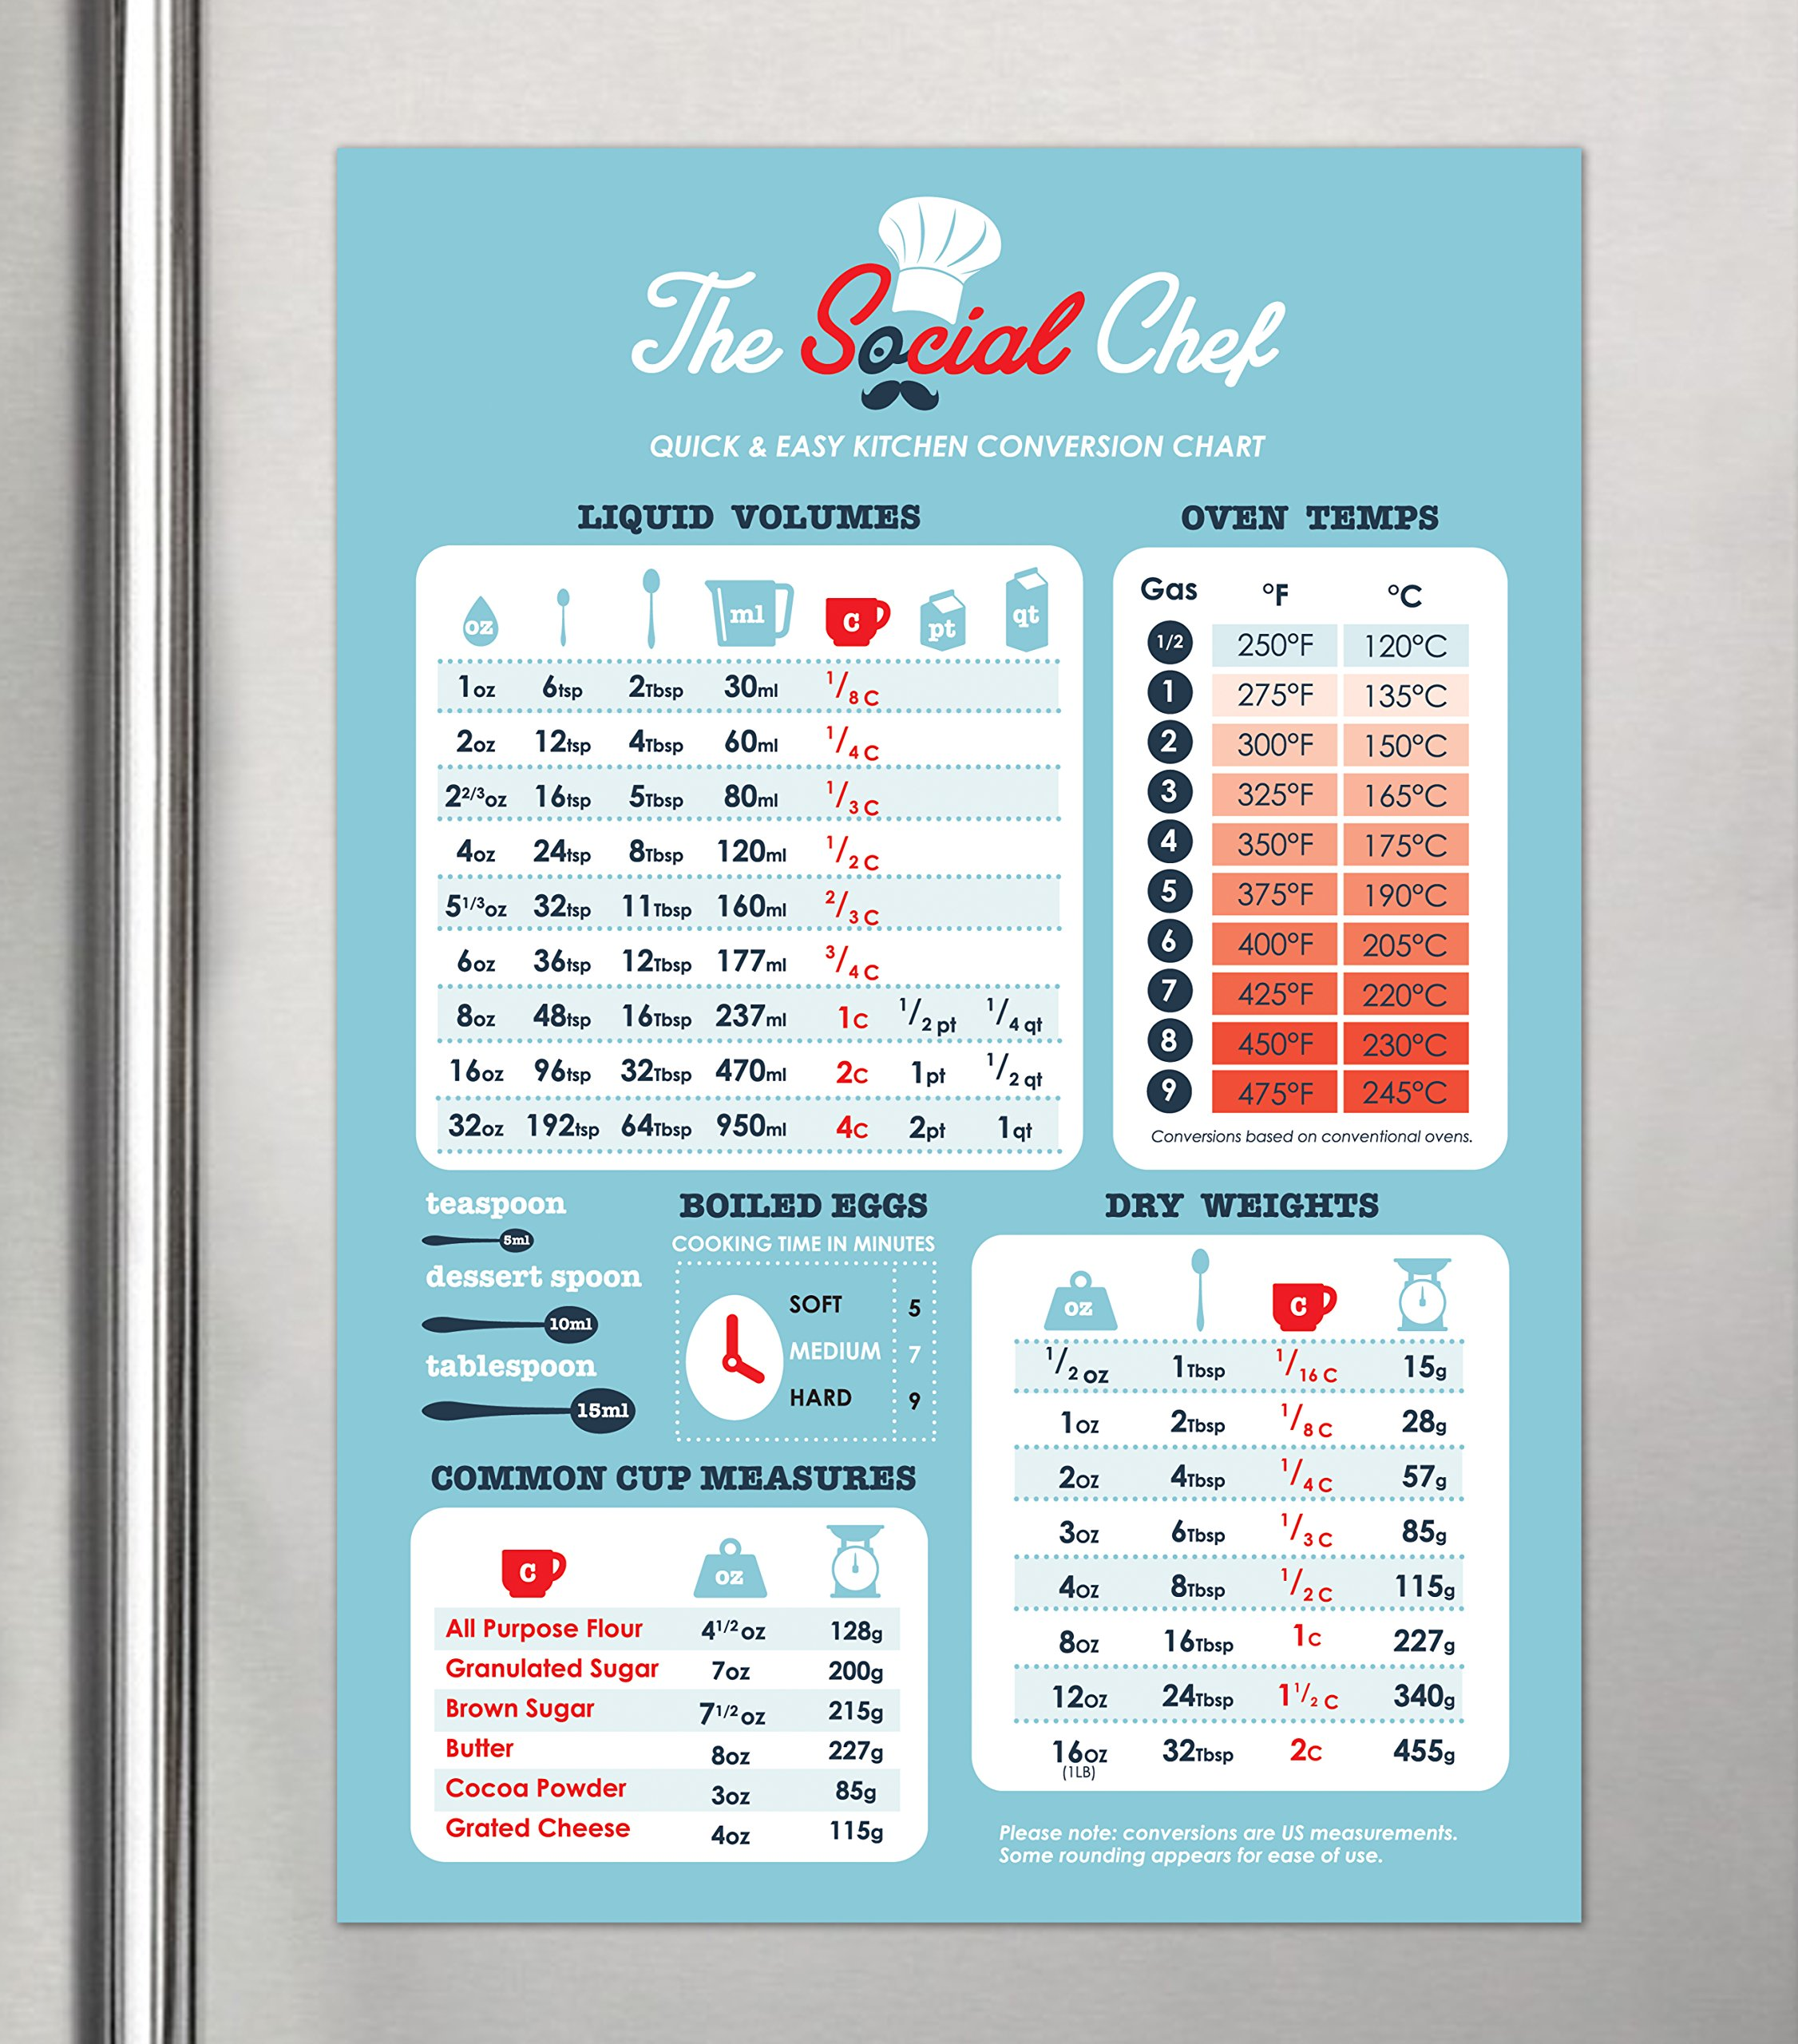 The Social Chef Magnetic Kitchen Conversion Chart by The Social Chef